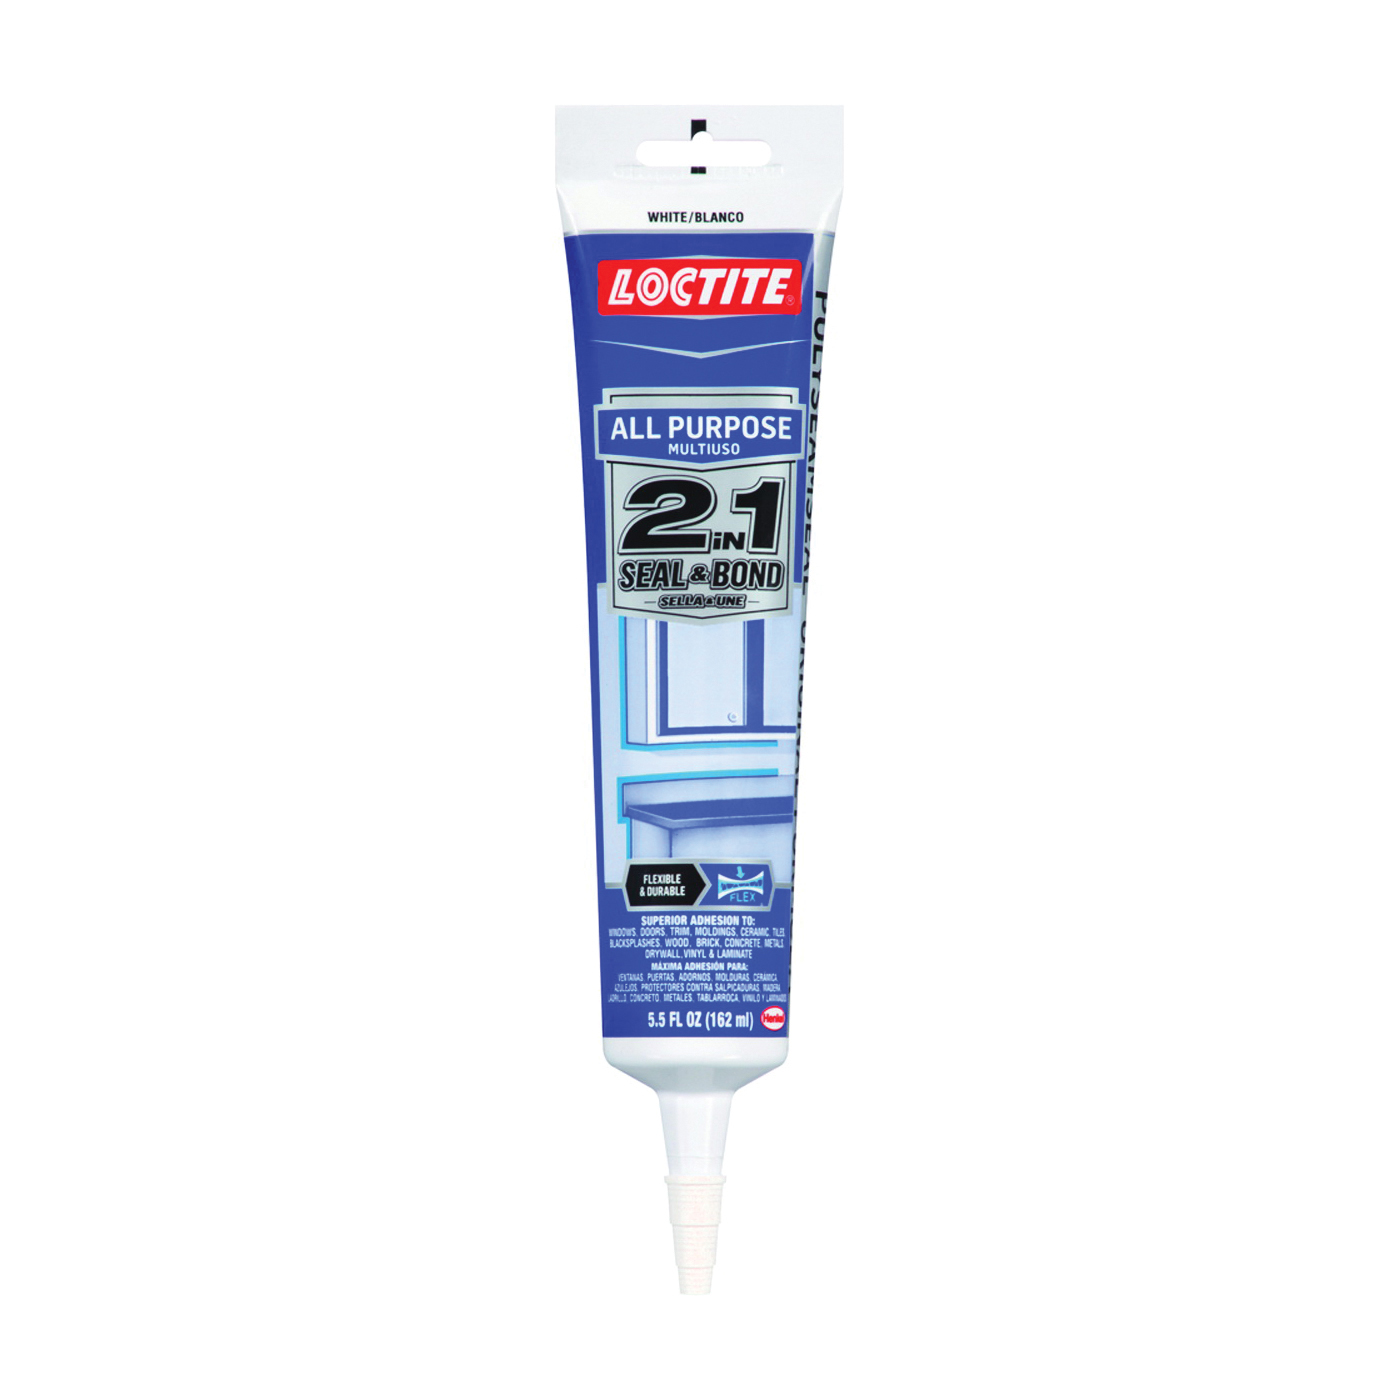 Picture of Loctite POLYSEAMSEAL 2139006 Adhesive Caulk, White, 24 hr to 2 weeks Curing, 40 to 100 deg F, 5.5 oz Package